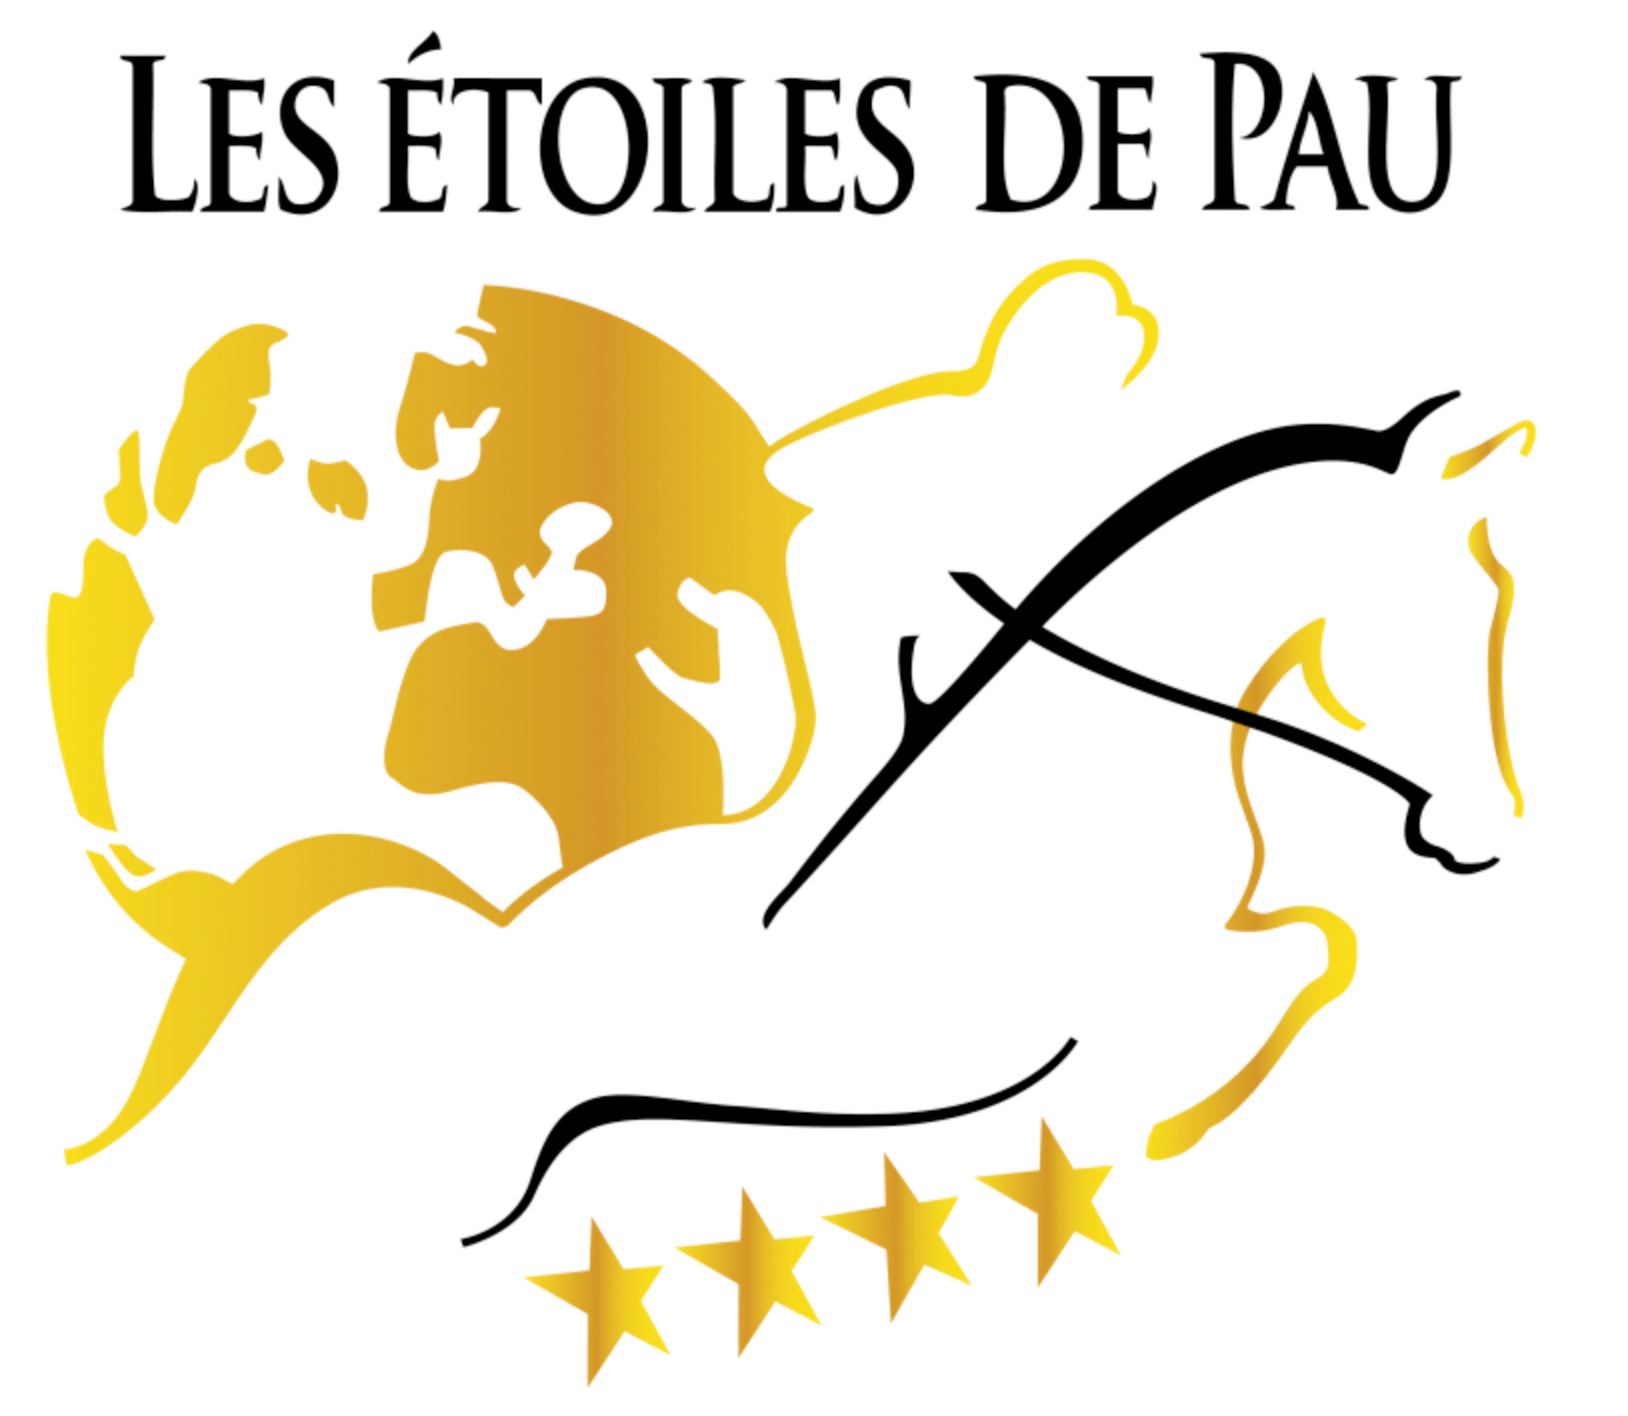 Les 5 Etoiles de Pau to run the CCI5*-L  competition in October.